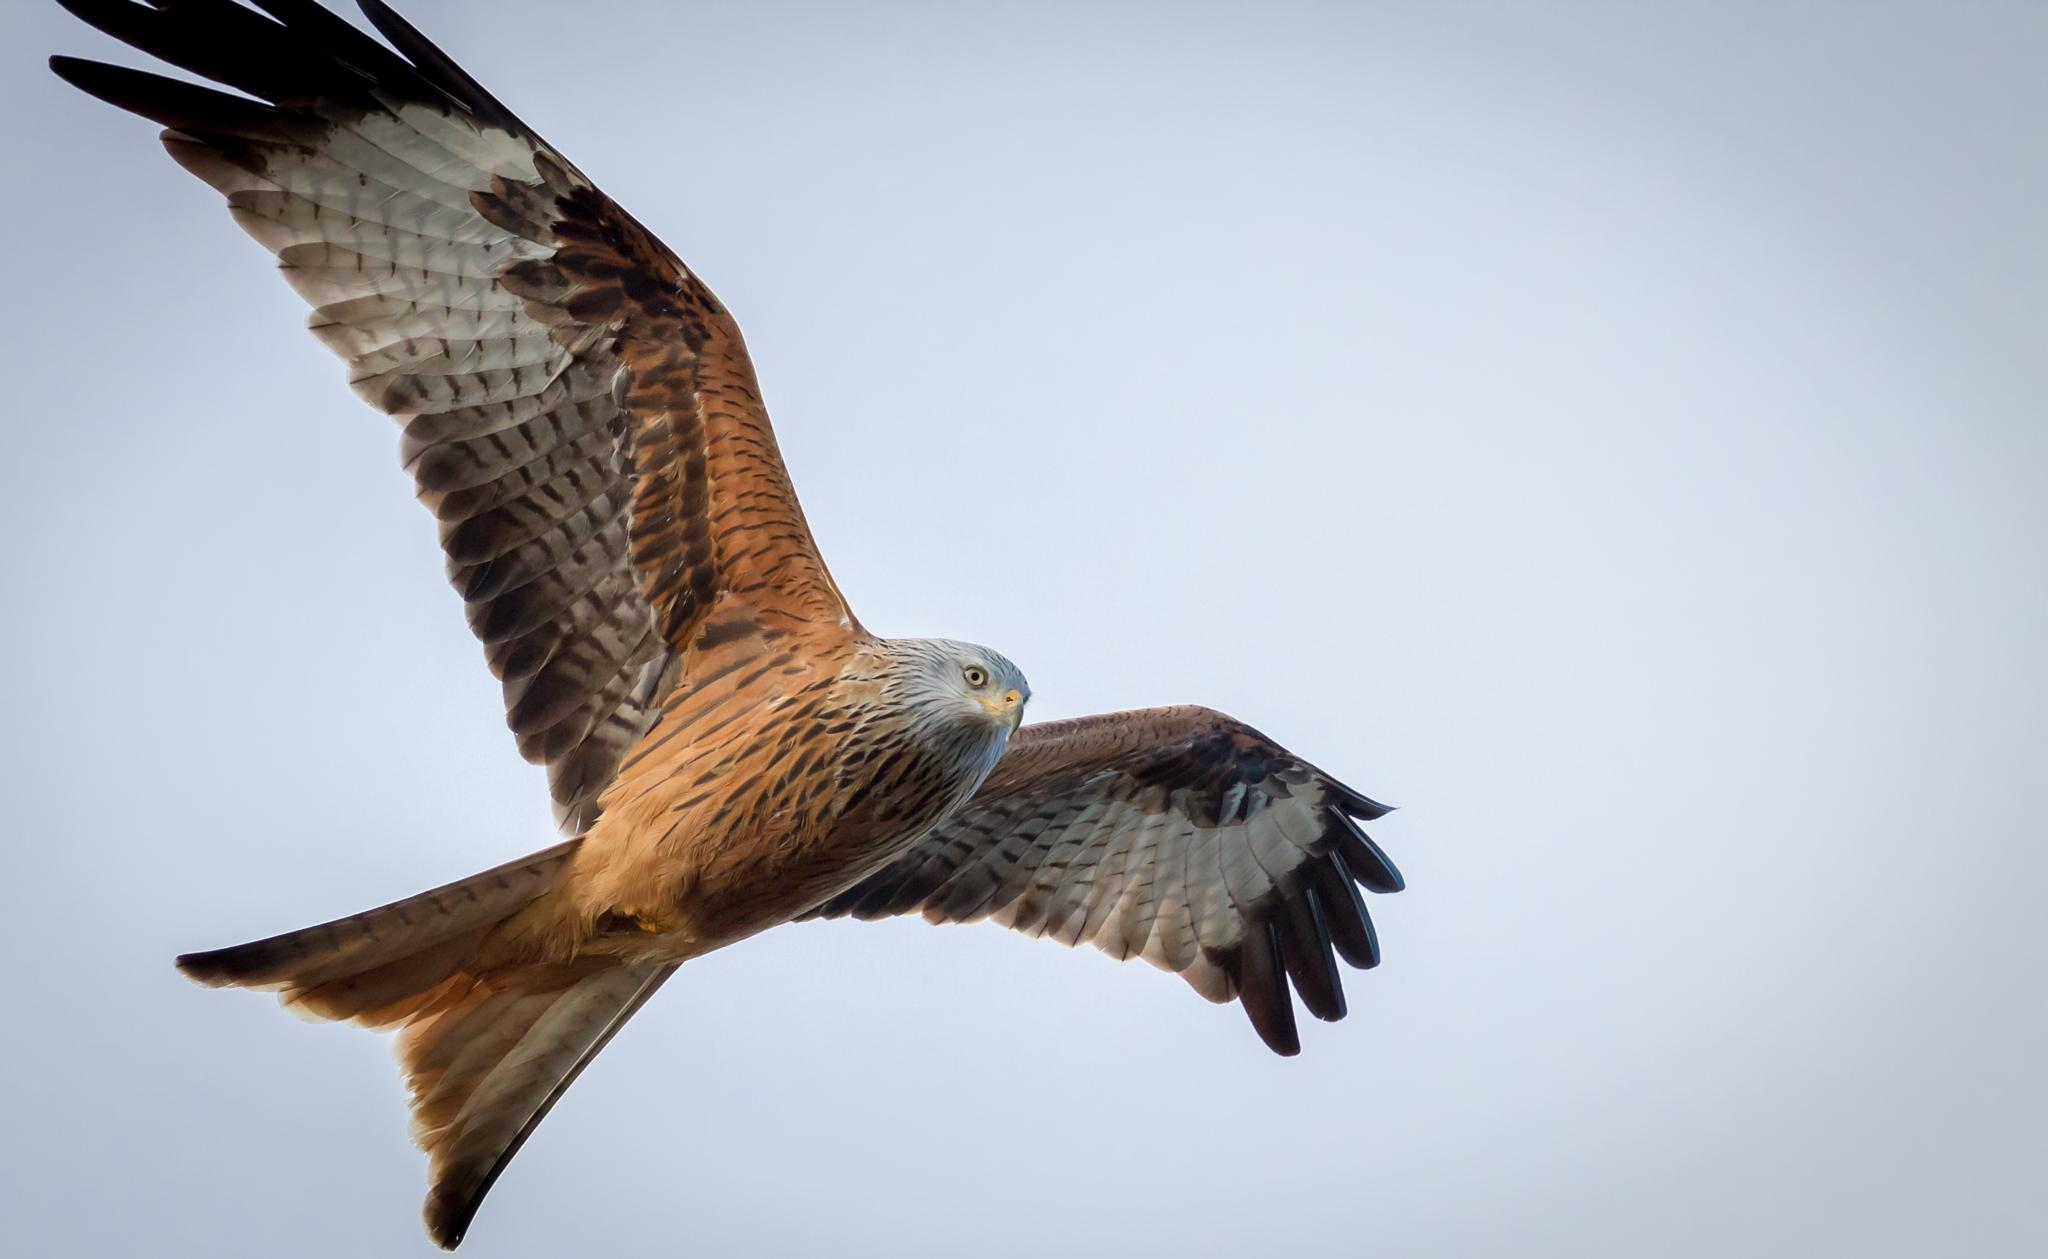 Red Kite by Patrick Galka